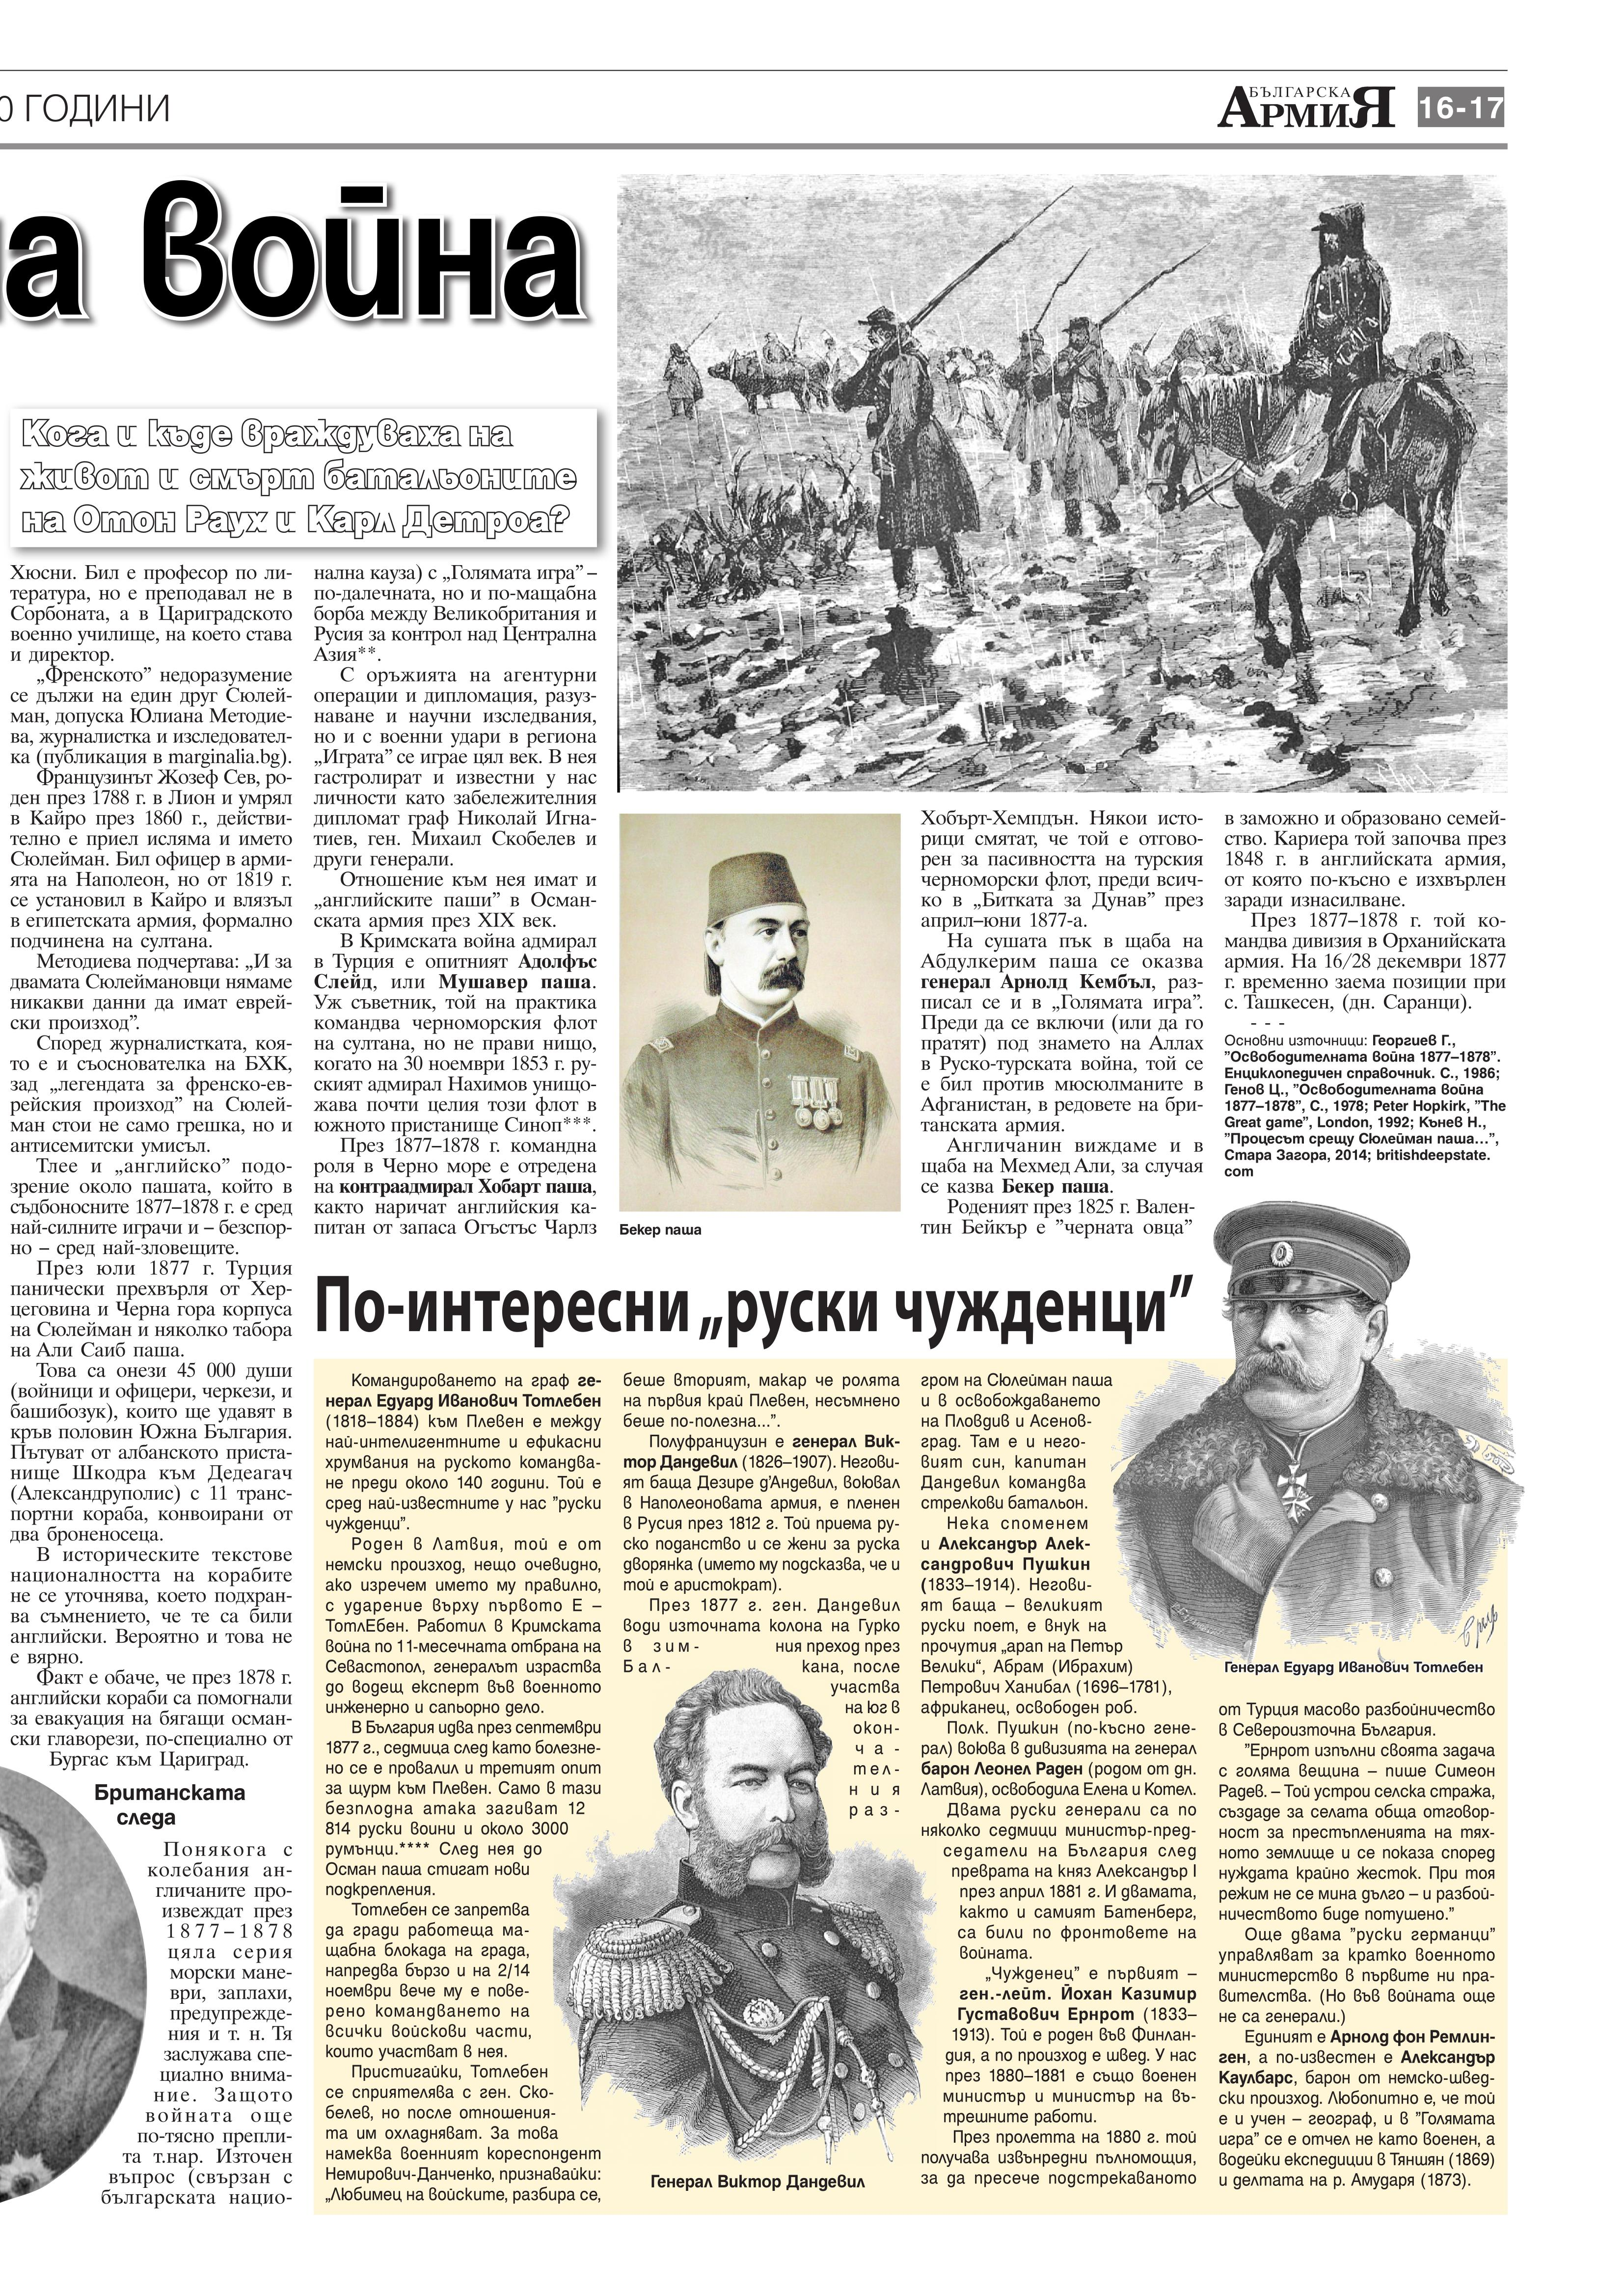 http://armymedia.bg/wp-content/uploads/2015/06/17.page1_-37.jpg